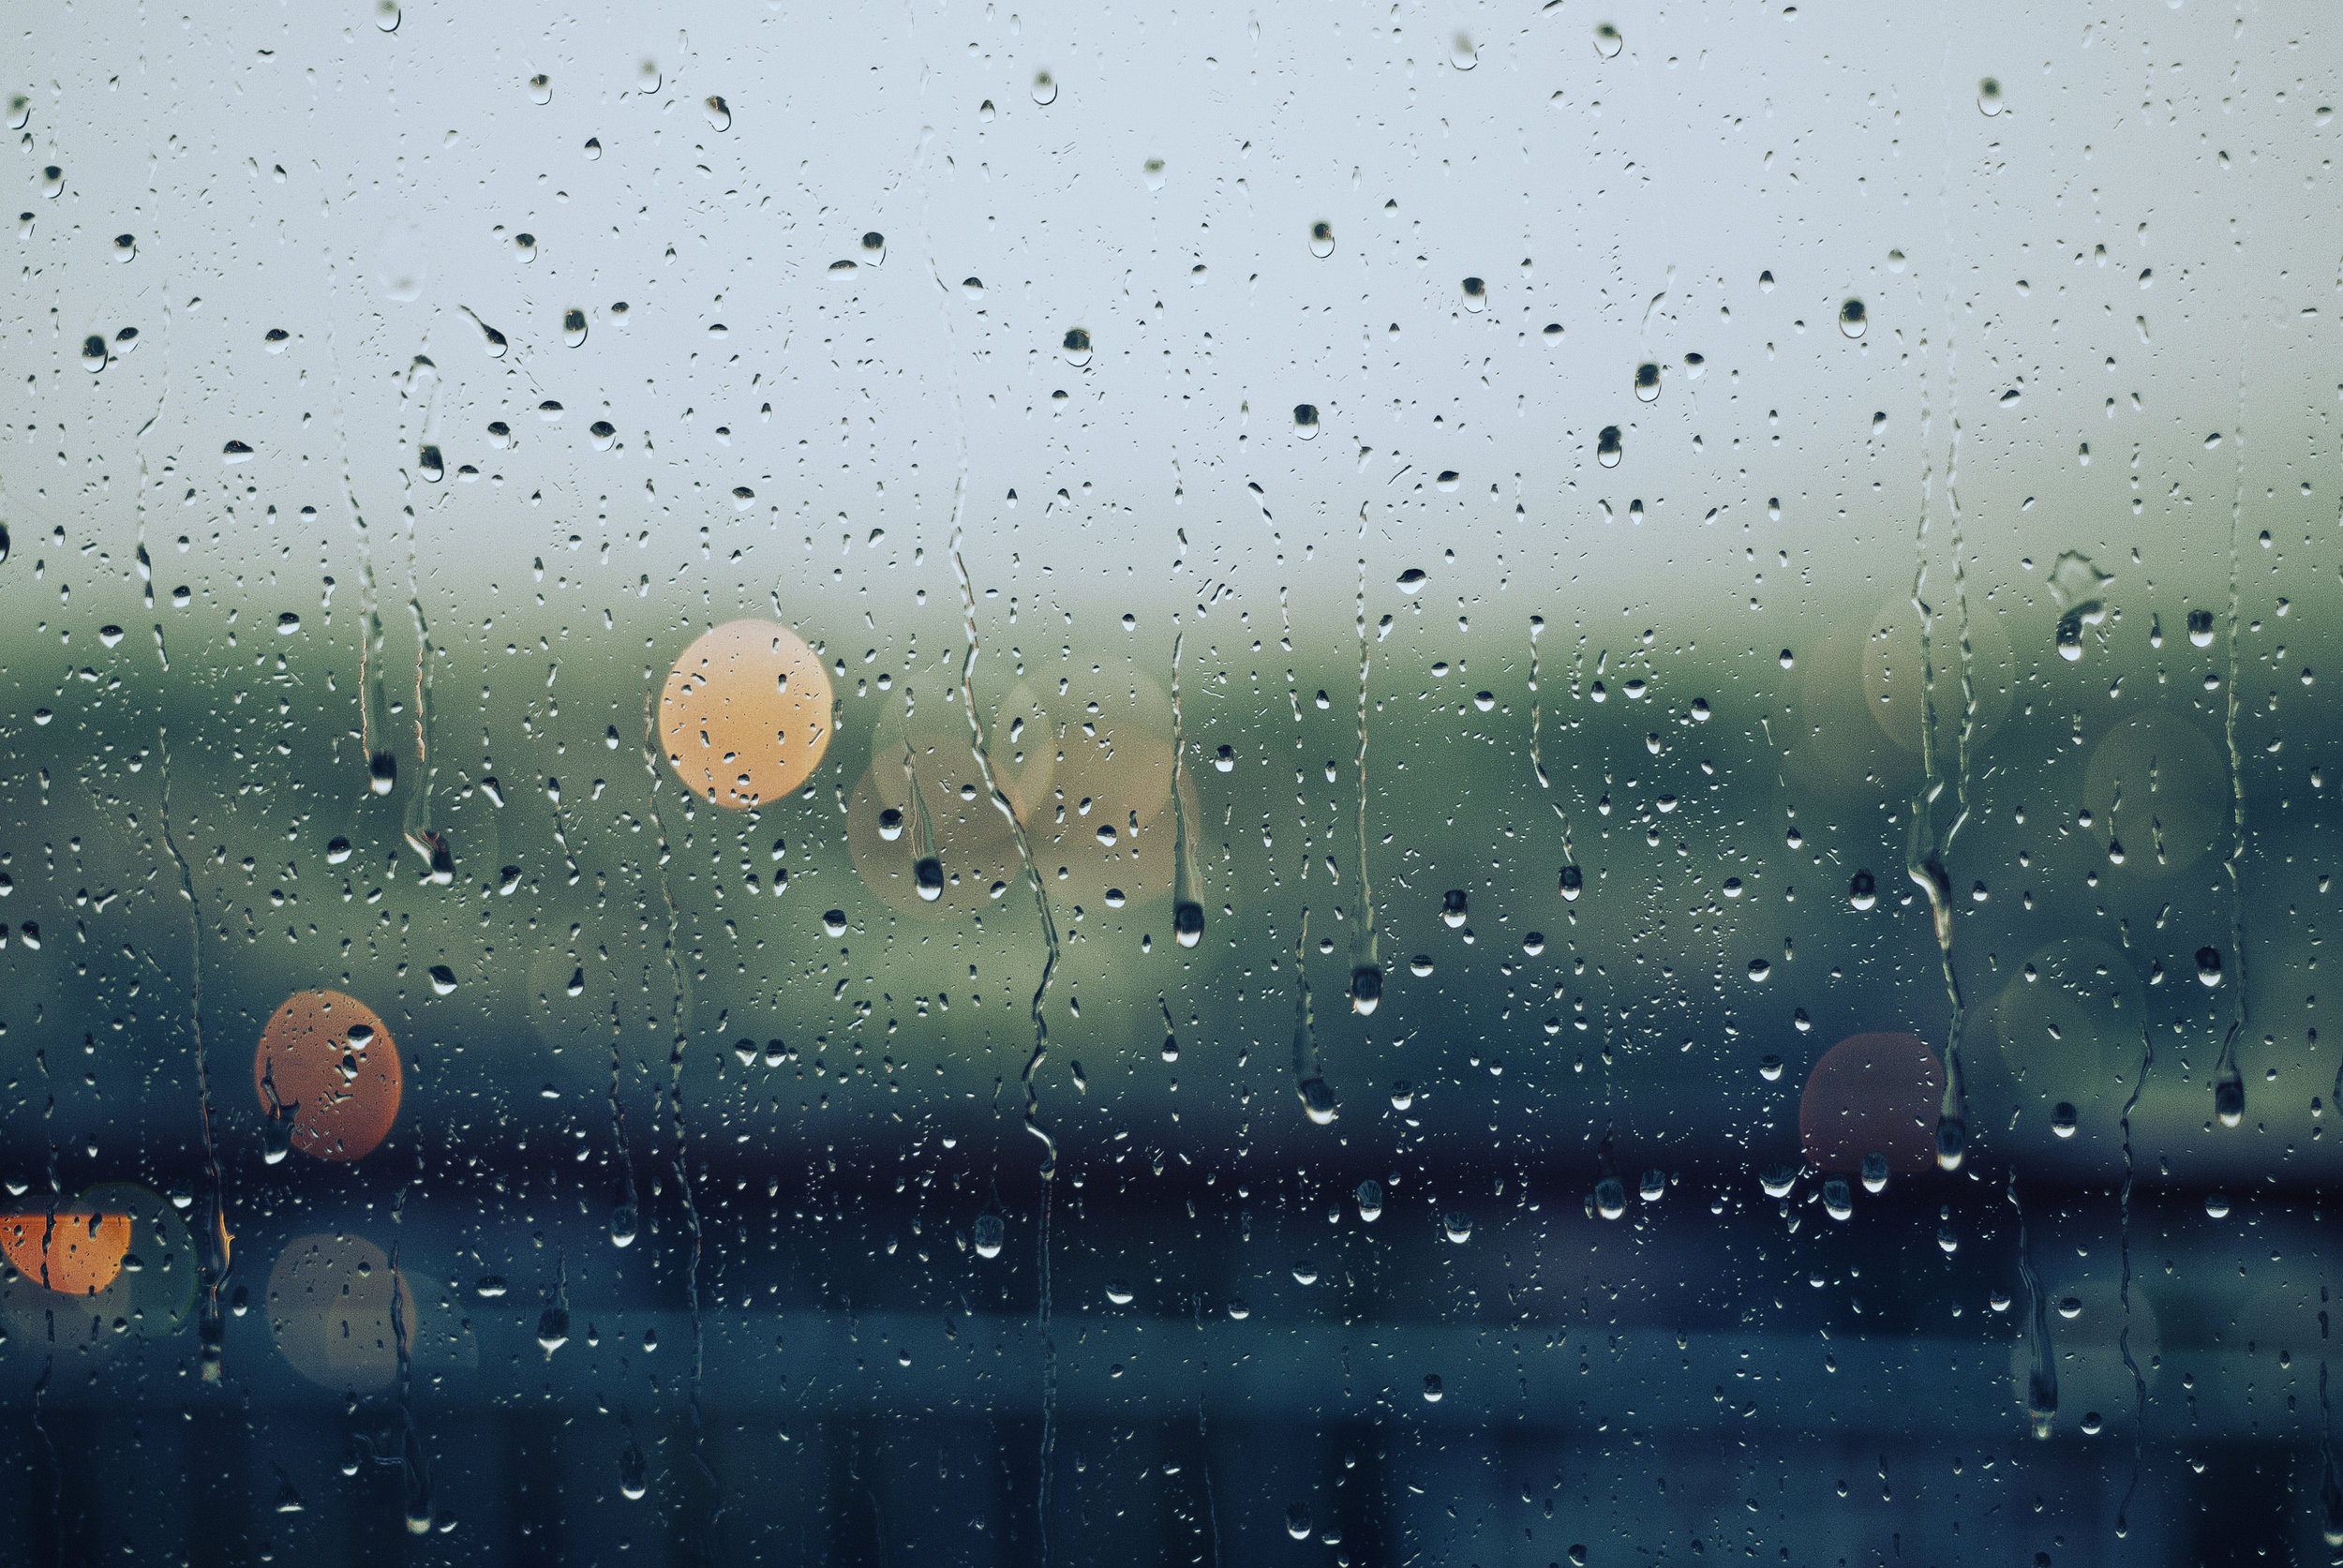 Cancellation due to rain! : ( - You are welcome to brave the elements on your own.Our official Makom Shalom event has been cancelled.